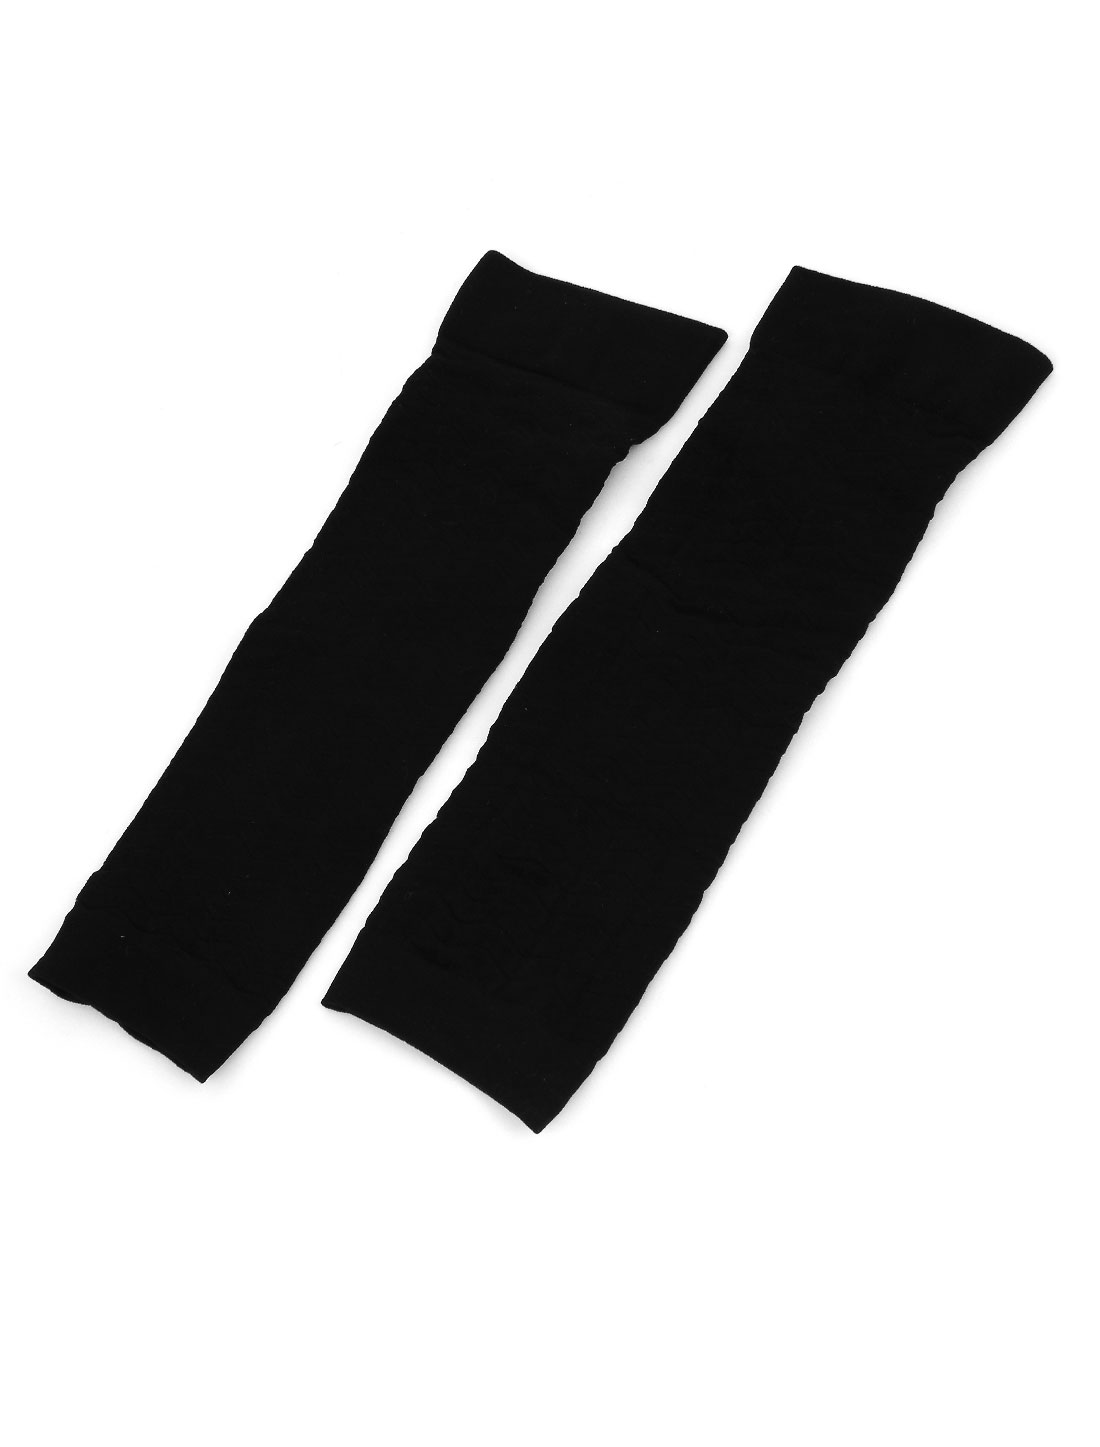 Pair Zig Zag Print Elastic Fingerless Arm Warmers Gloves Black for Women